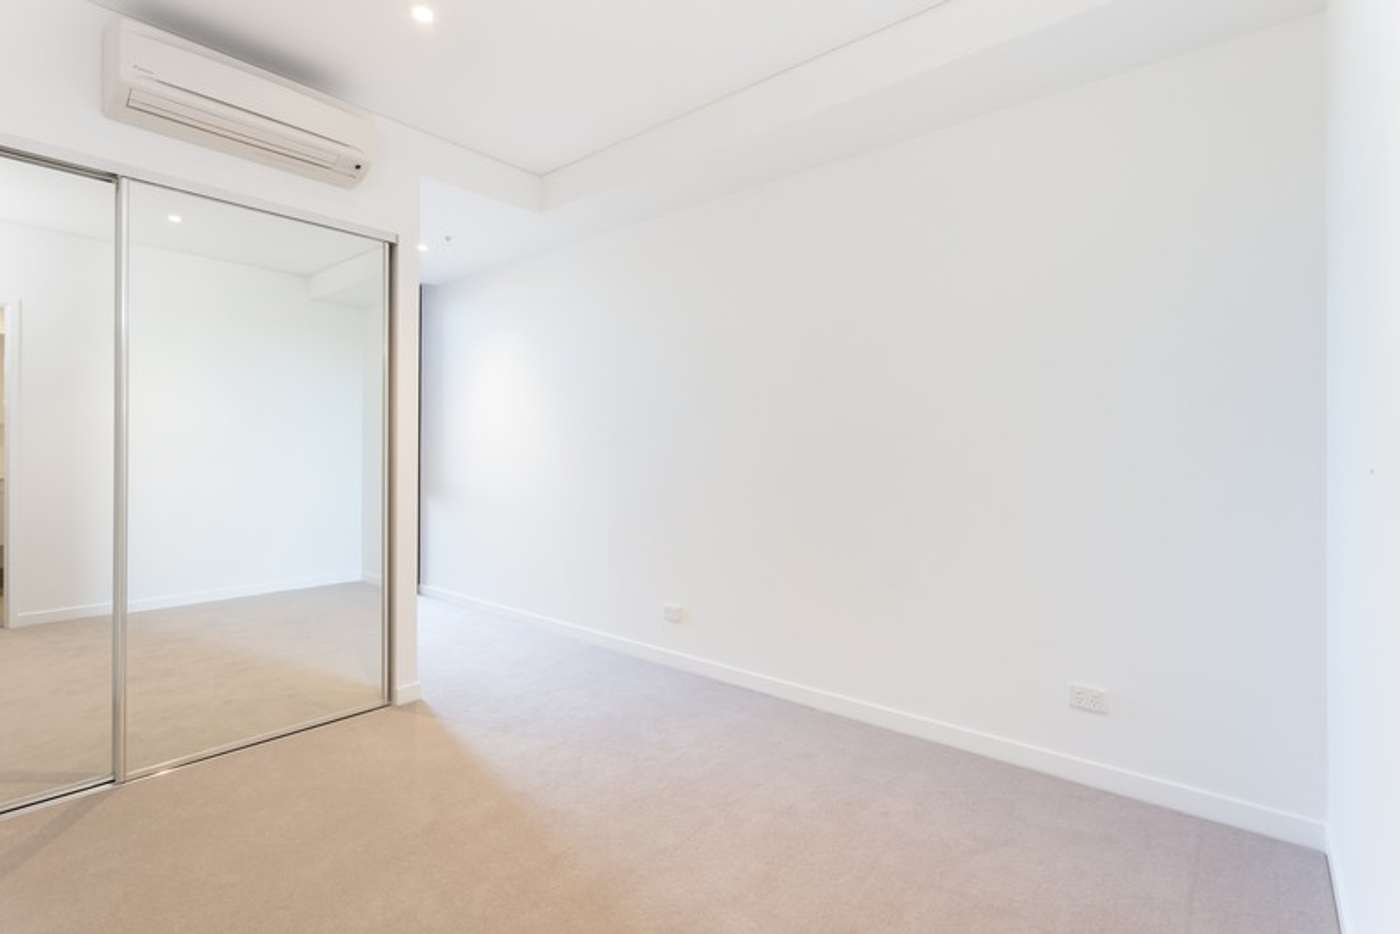 Sixth view of Homely apartment listing, 10411/320 Macarthur Avenue, Hamilton QLD 4007